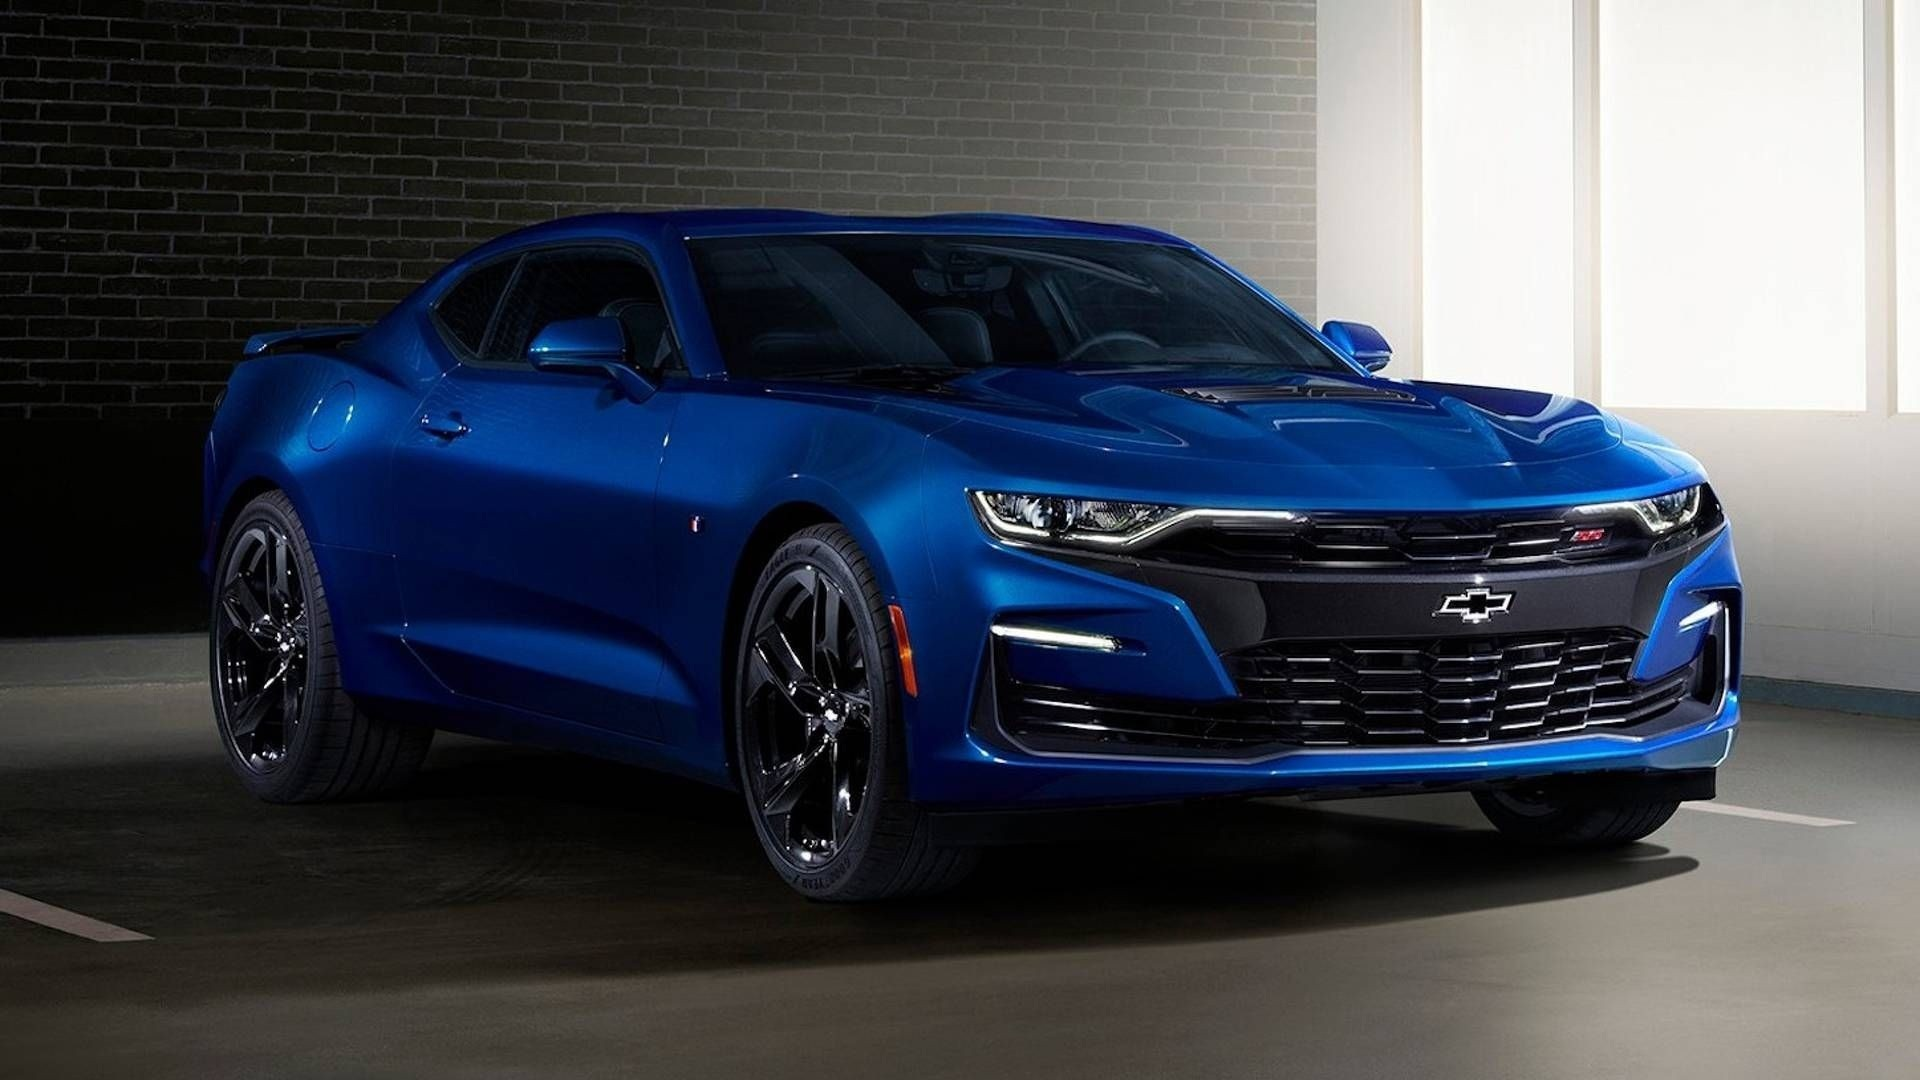 1920x1080 ... El Camino Auto Supercars 2019 Chevrolet Ss Lovely Chevrolet Camaro 2019  2019 Chevrolet Camaro Ss 4k 2 Wallpaper Hd Car ...